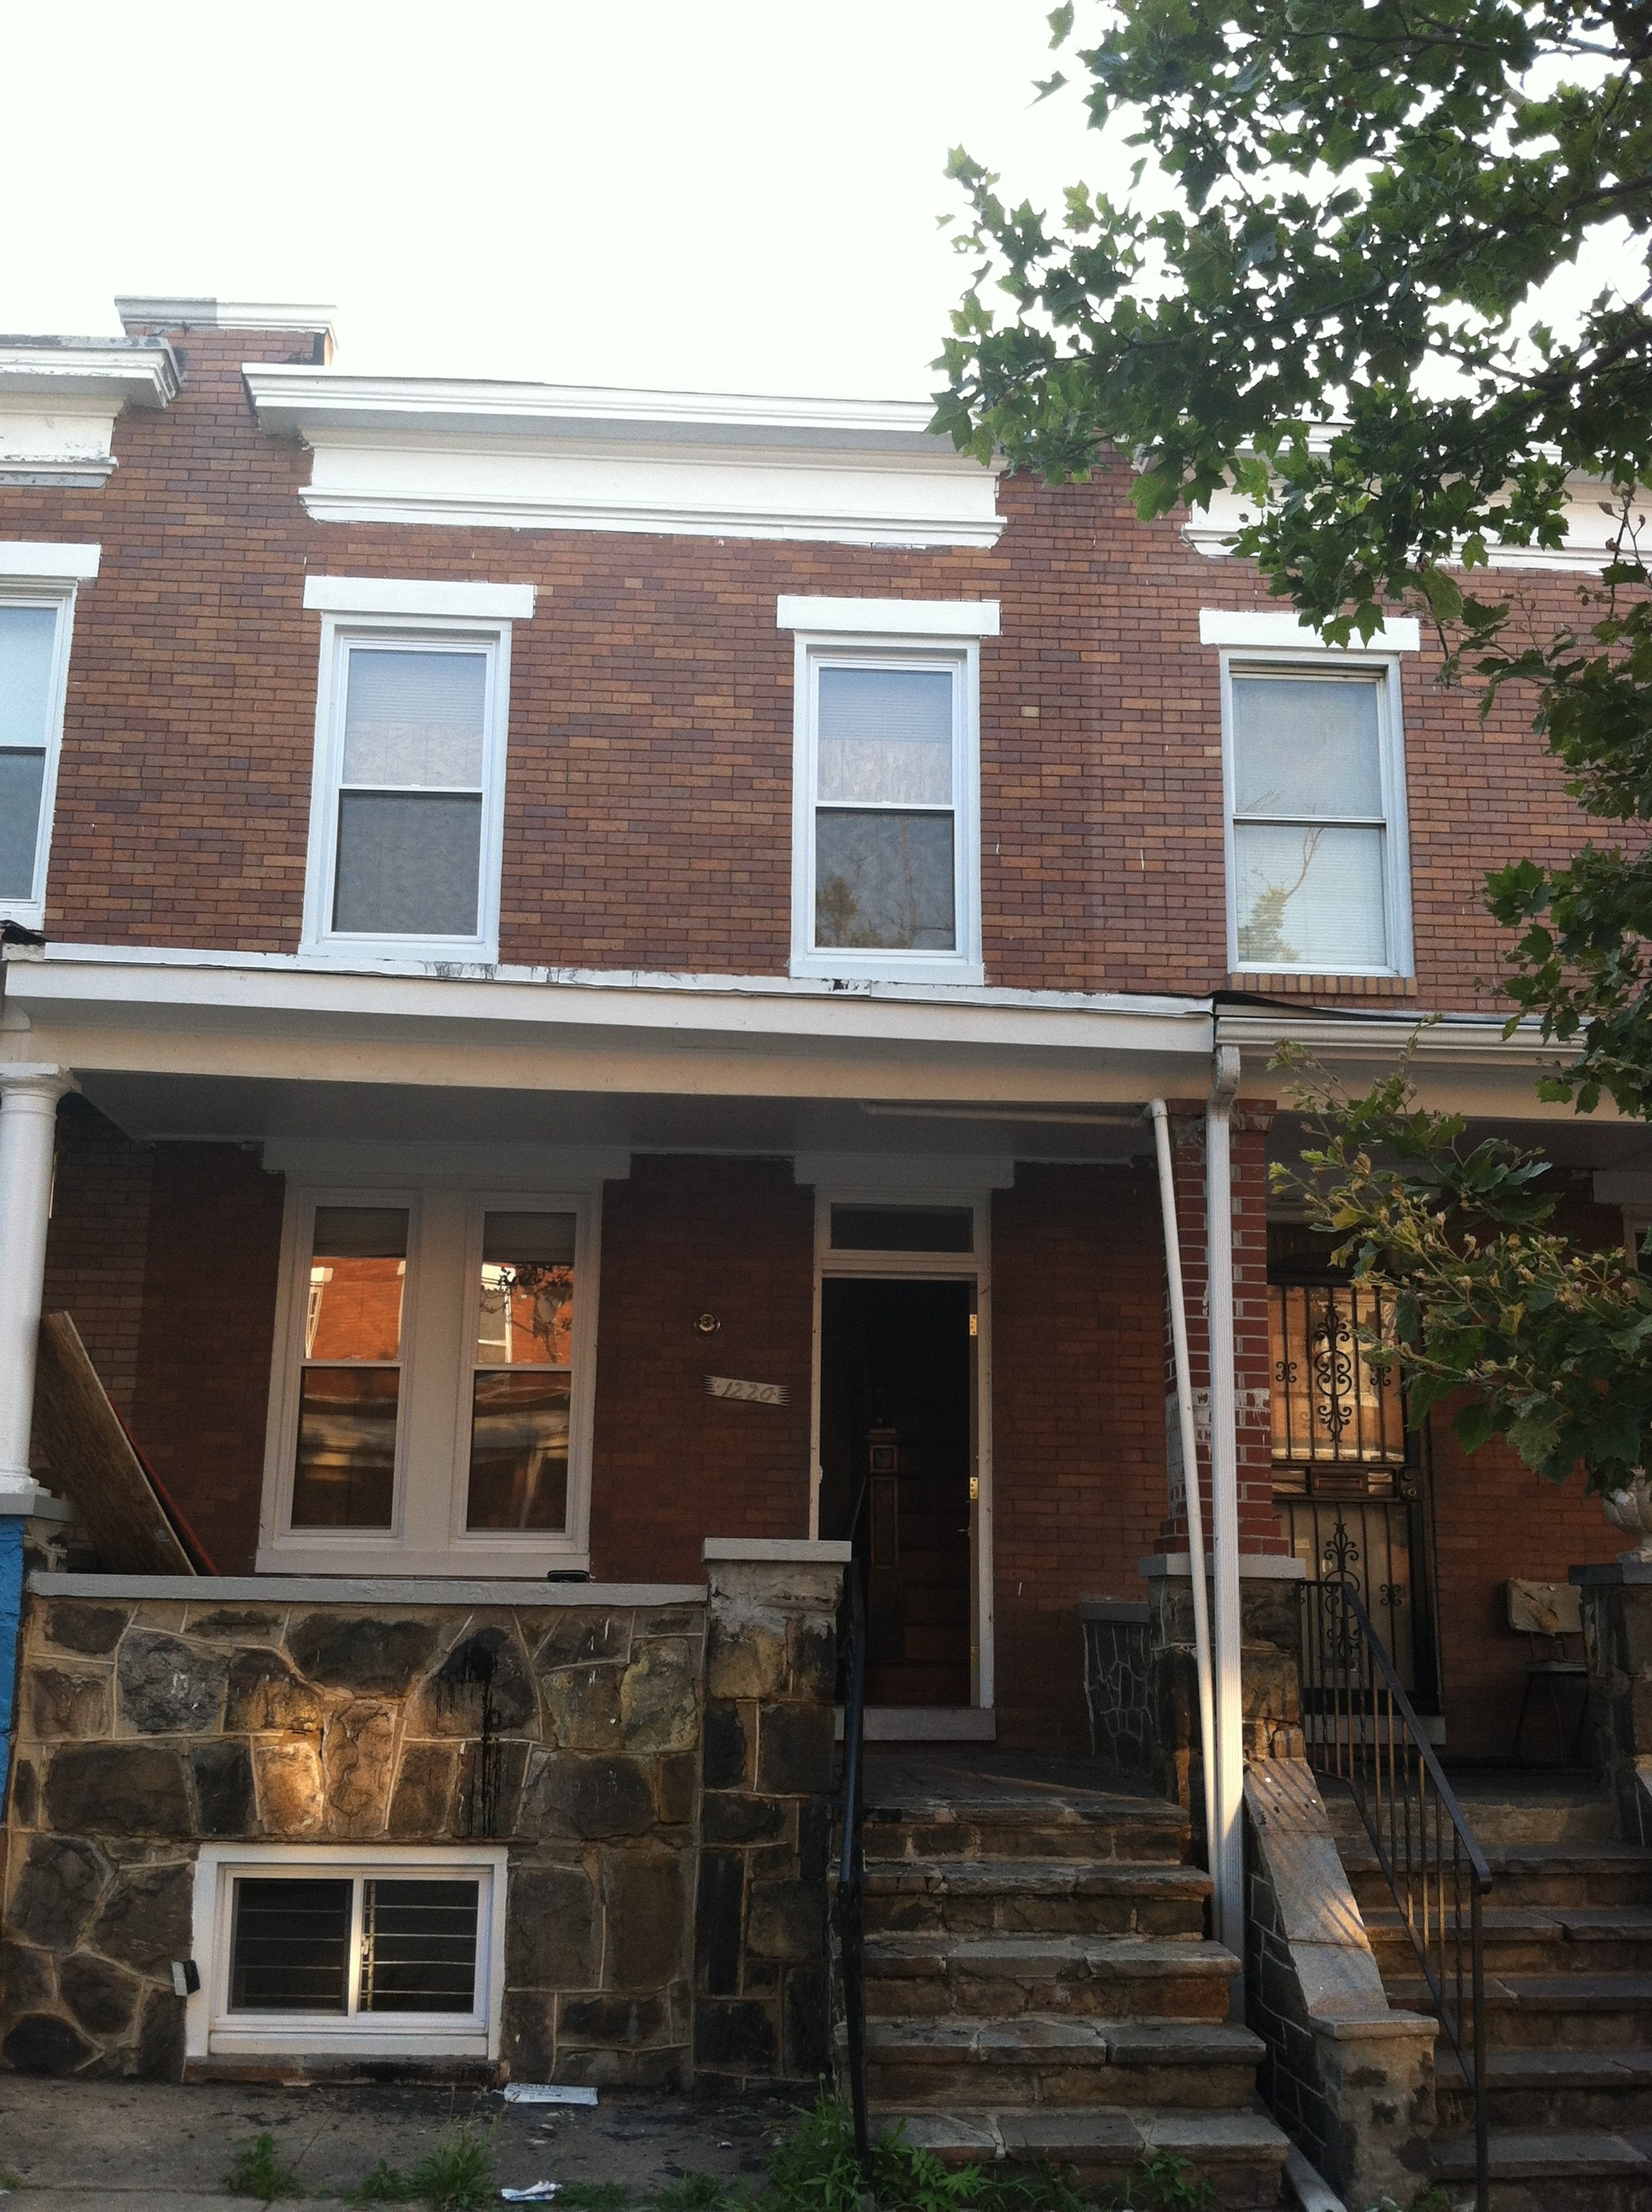 3 bedroom apartments for rent in buffalo ny 509 n belnord ave baltimore md 21205 3 bedroom 21209